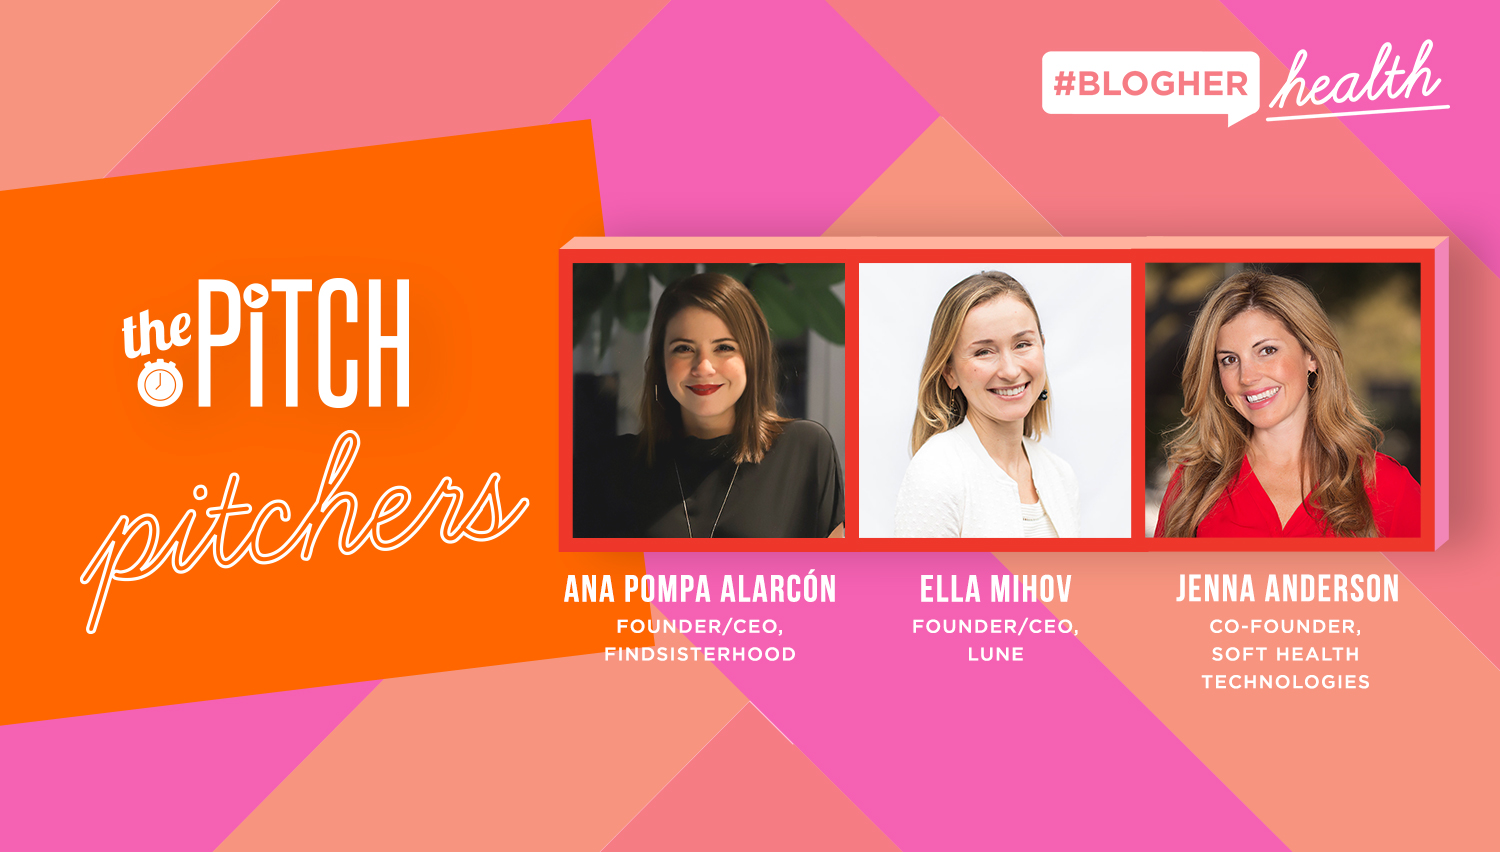 meet the entrepreneurs - Ana Pompa Alarcón, Ella Mihov and Jenna Anderson join the Pitch in LA this January!